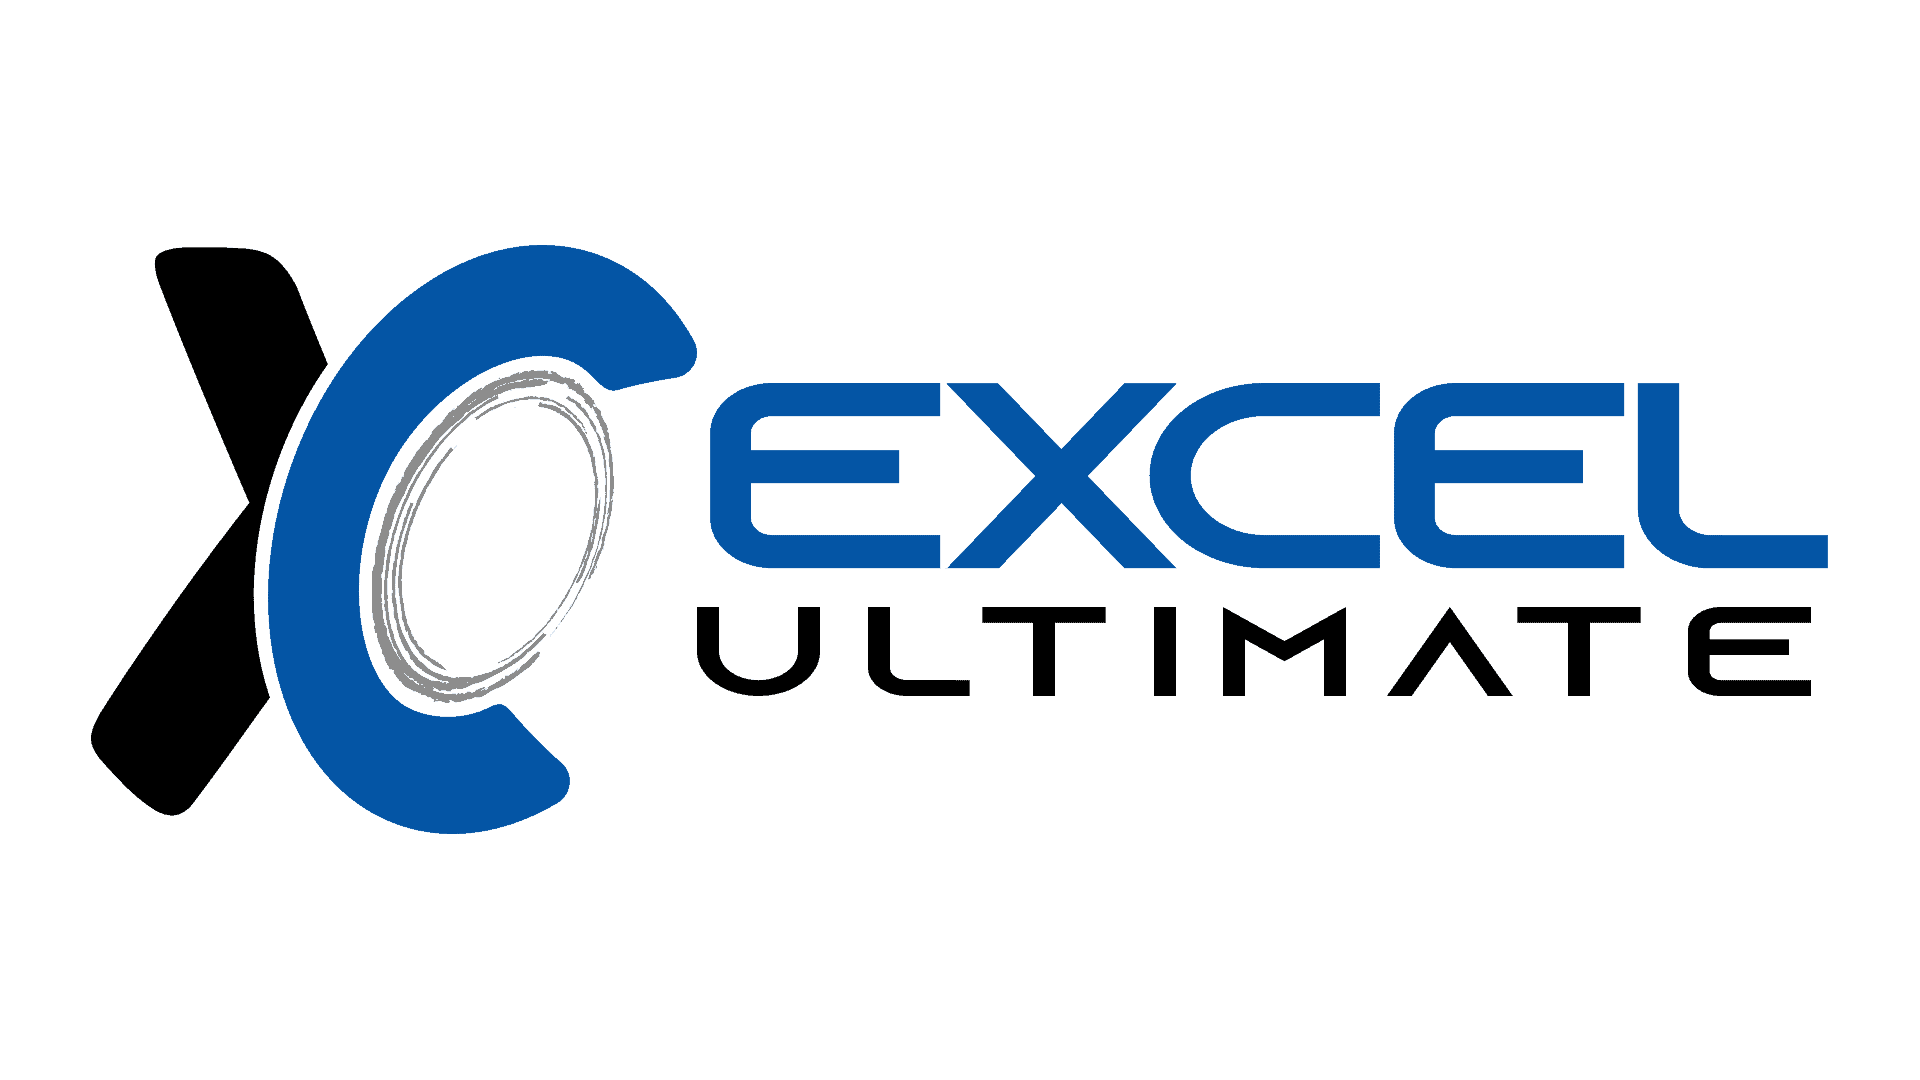 Excel Ultimate -  The #1 destination for ultimate educational resources